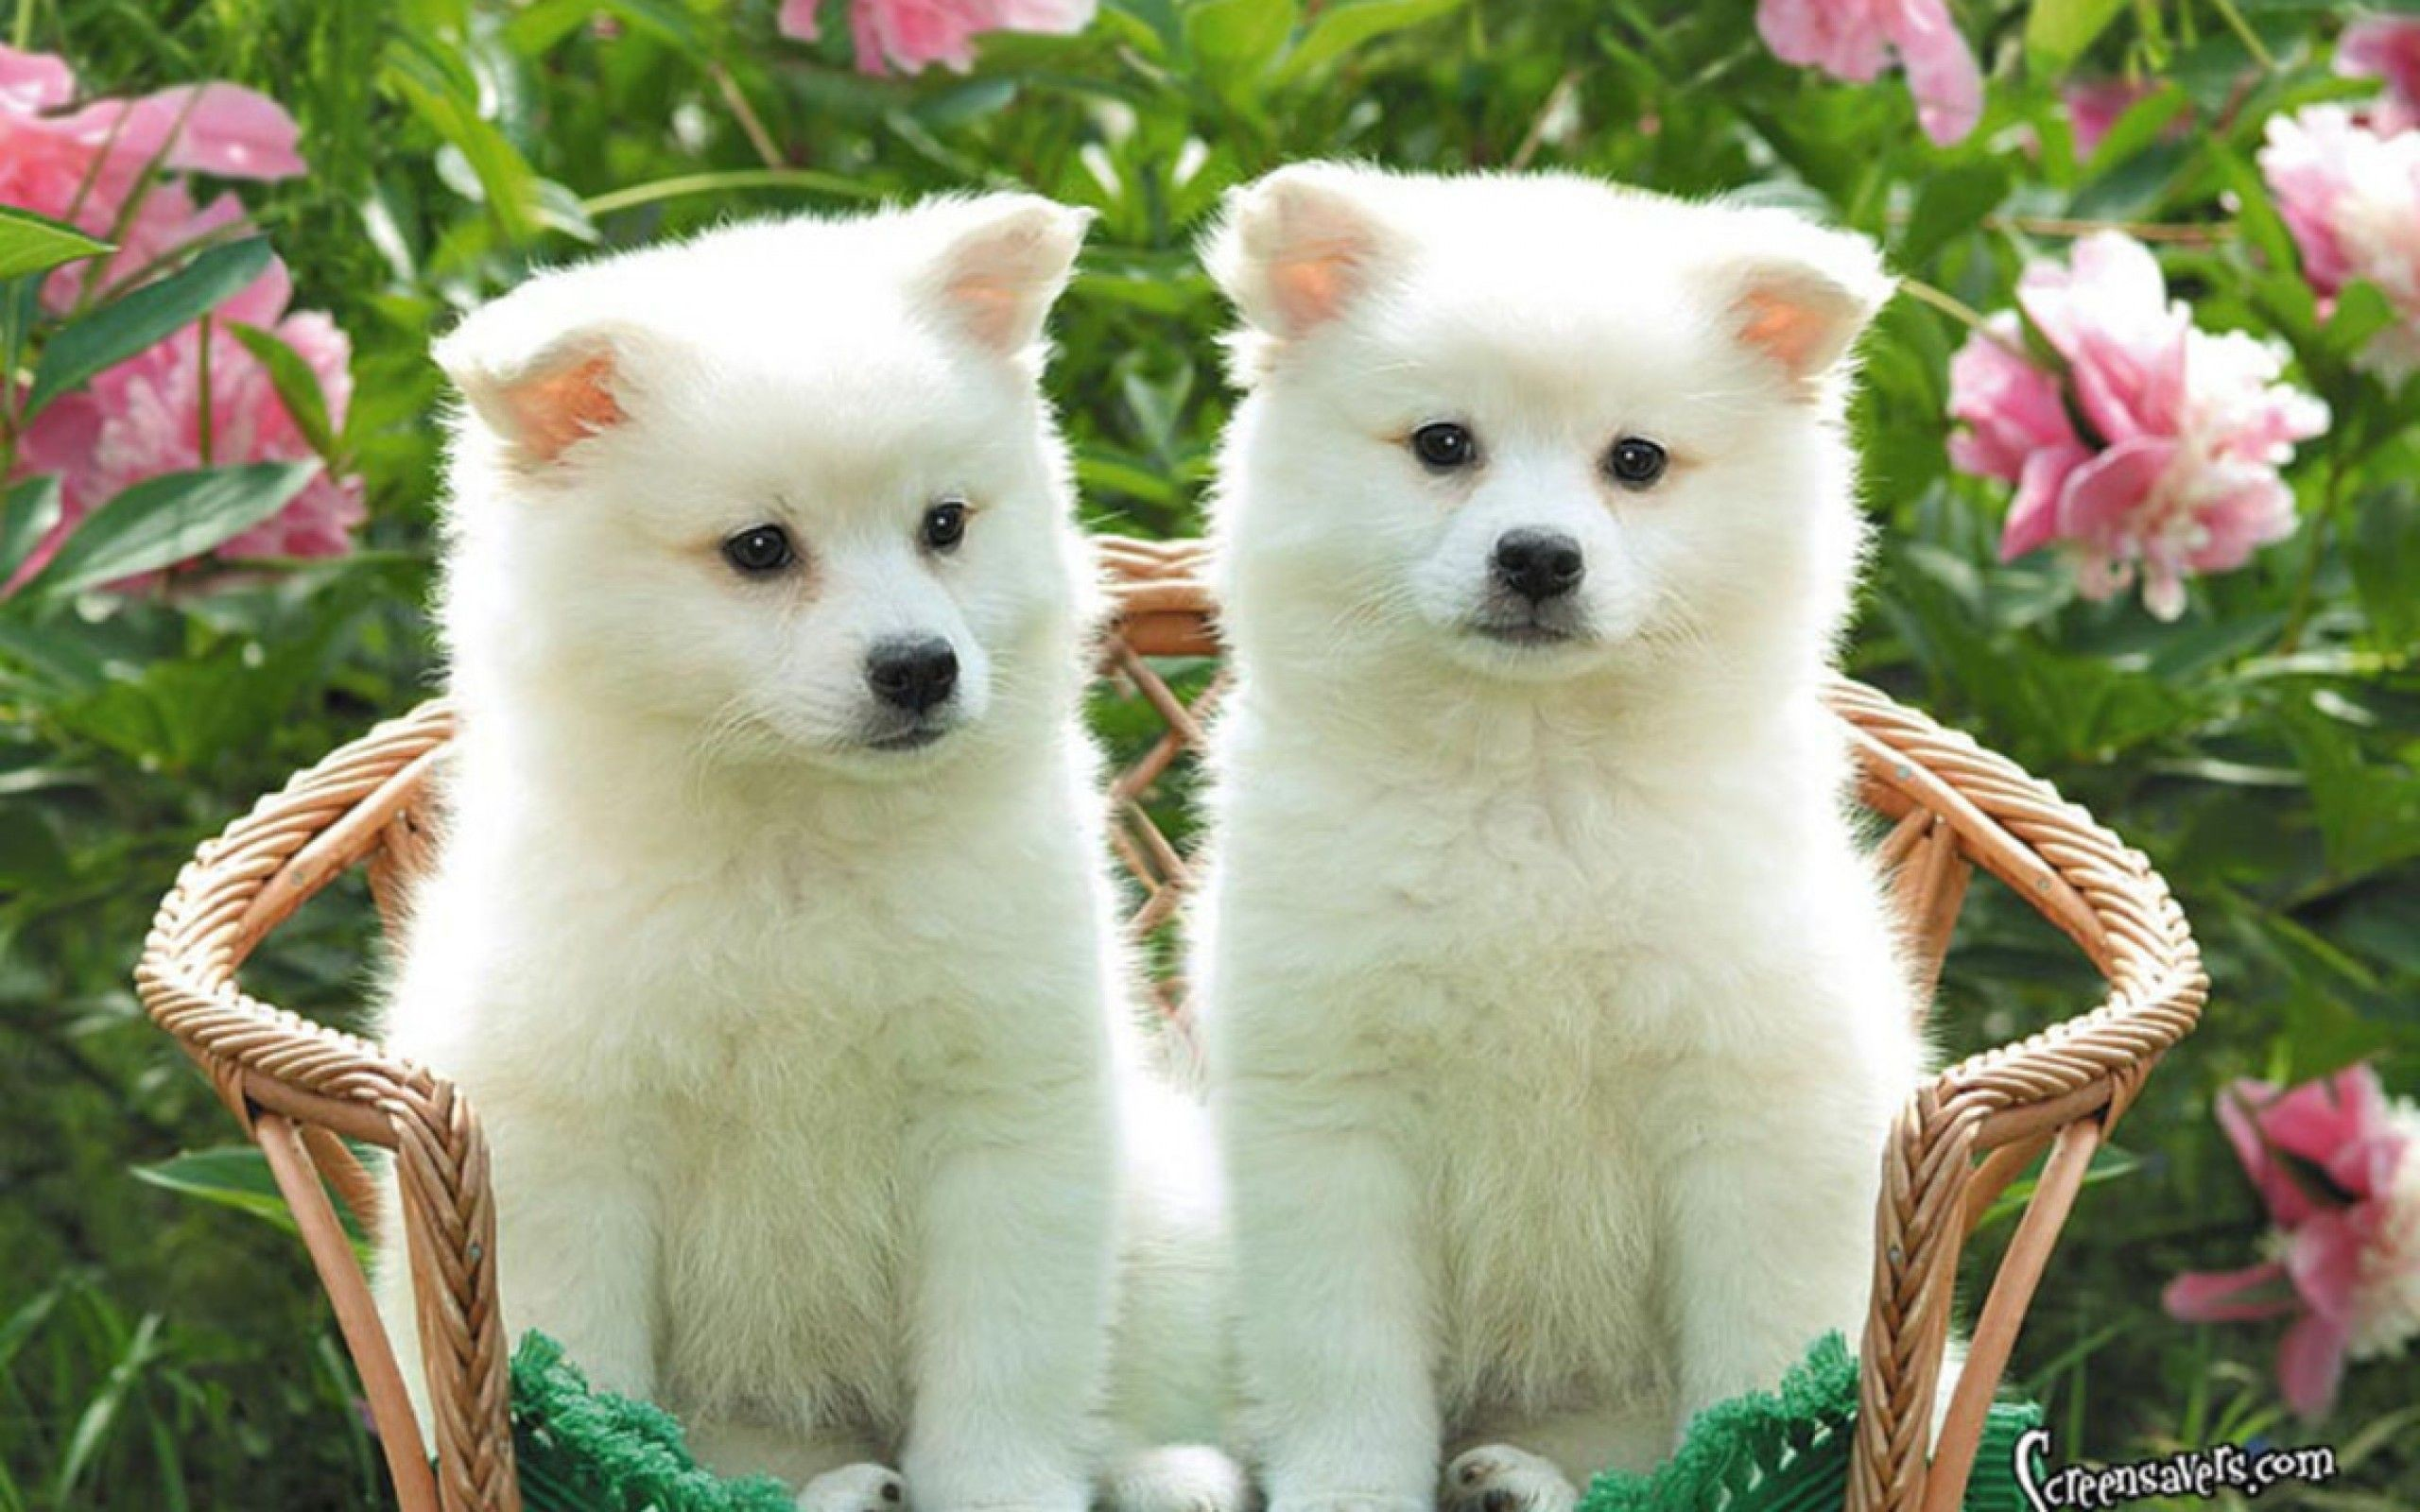 2560x1600 Puppies Together Hd Wallpaper For Desktop And Cute Kittens